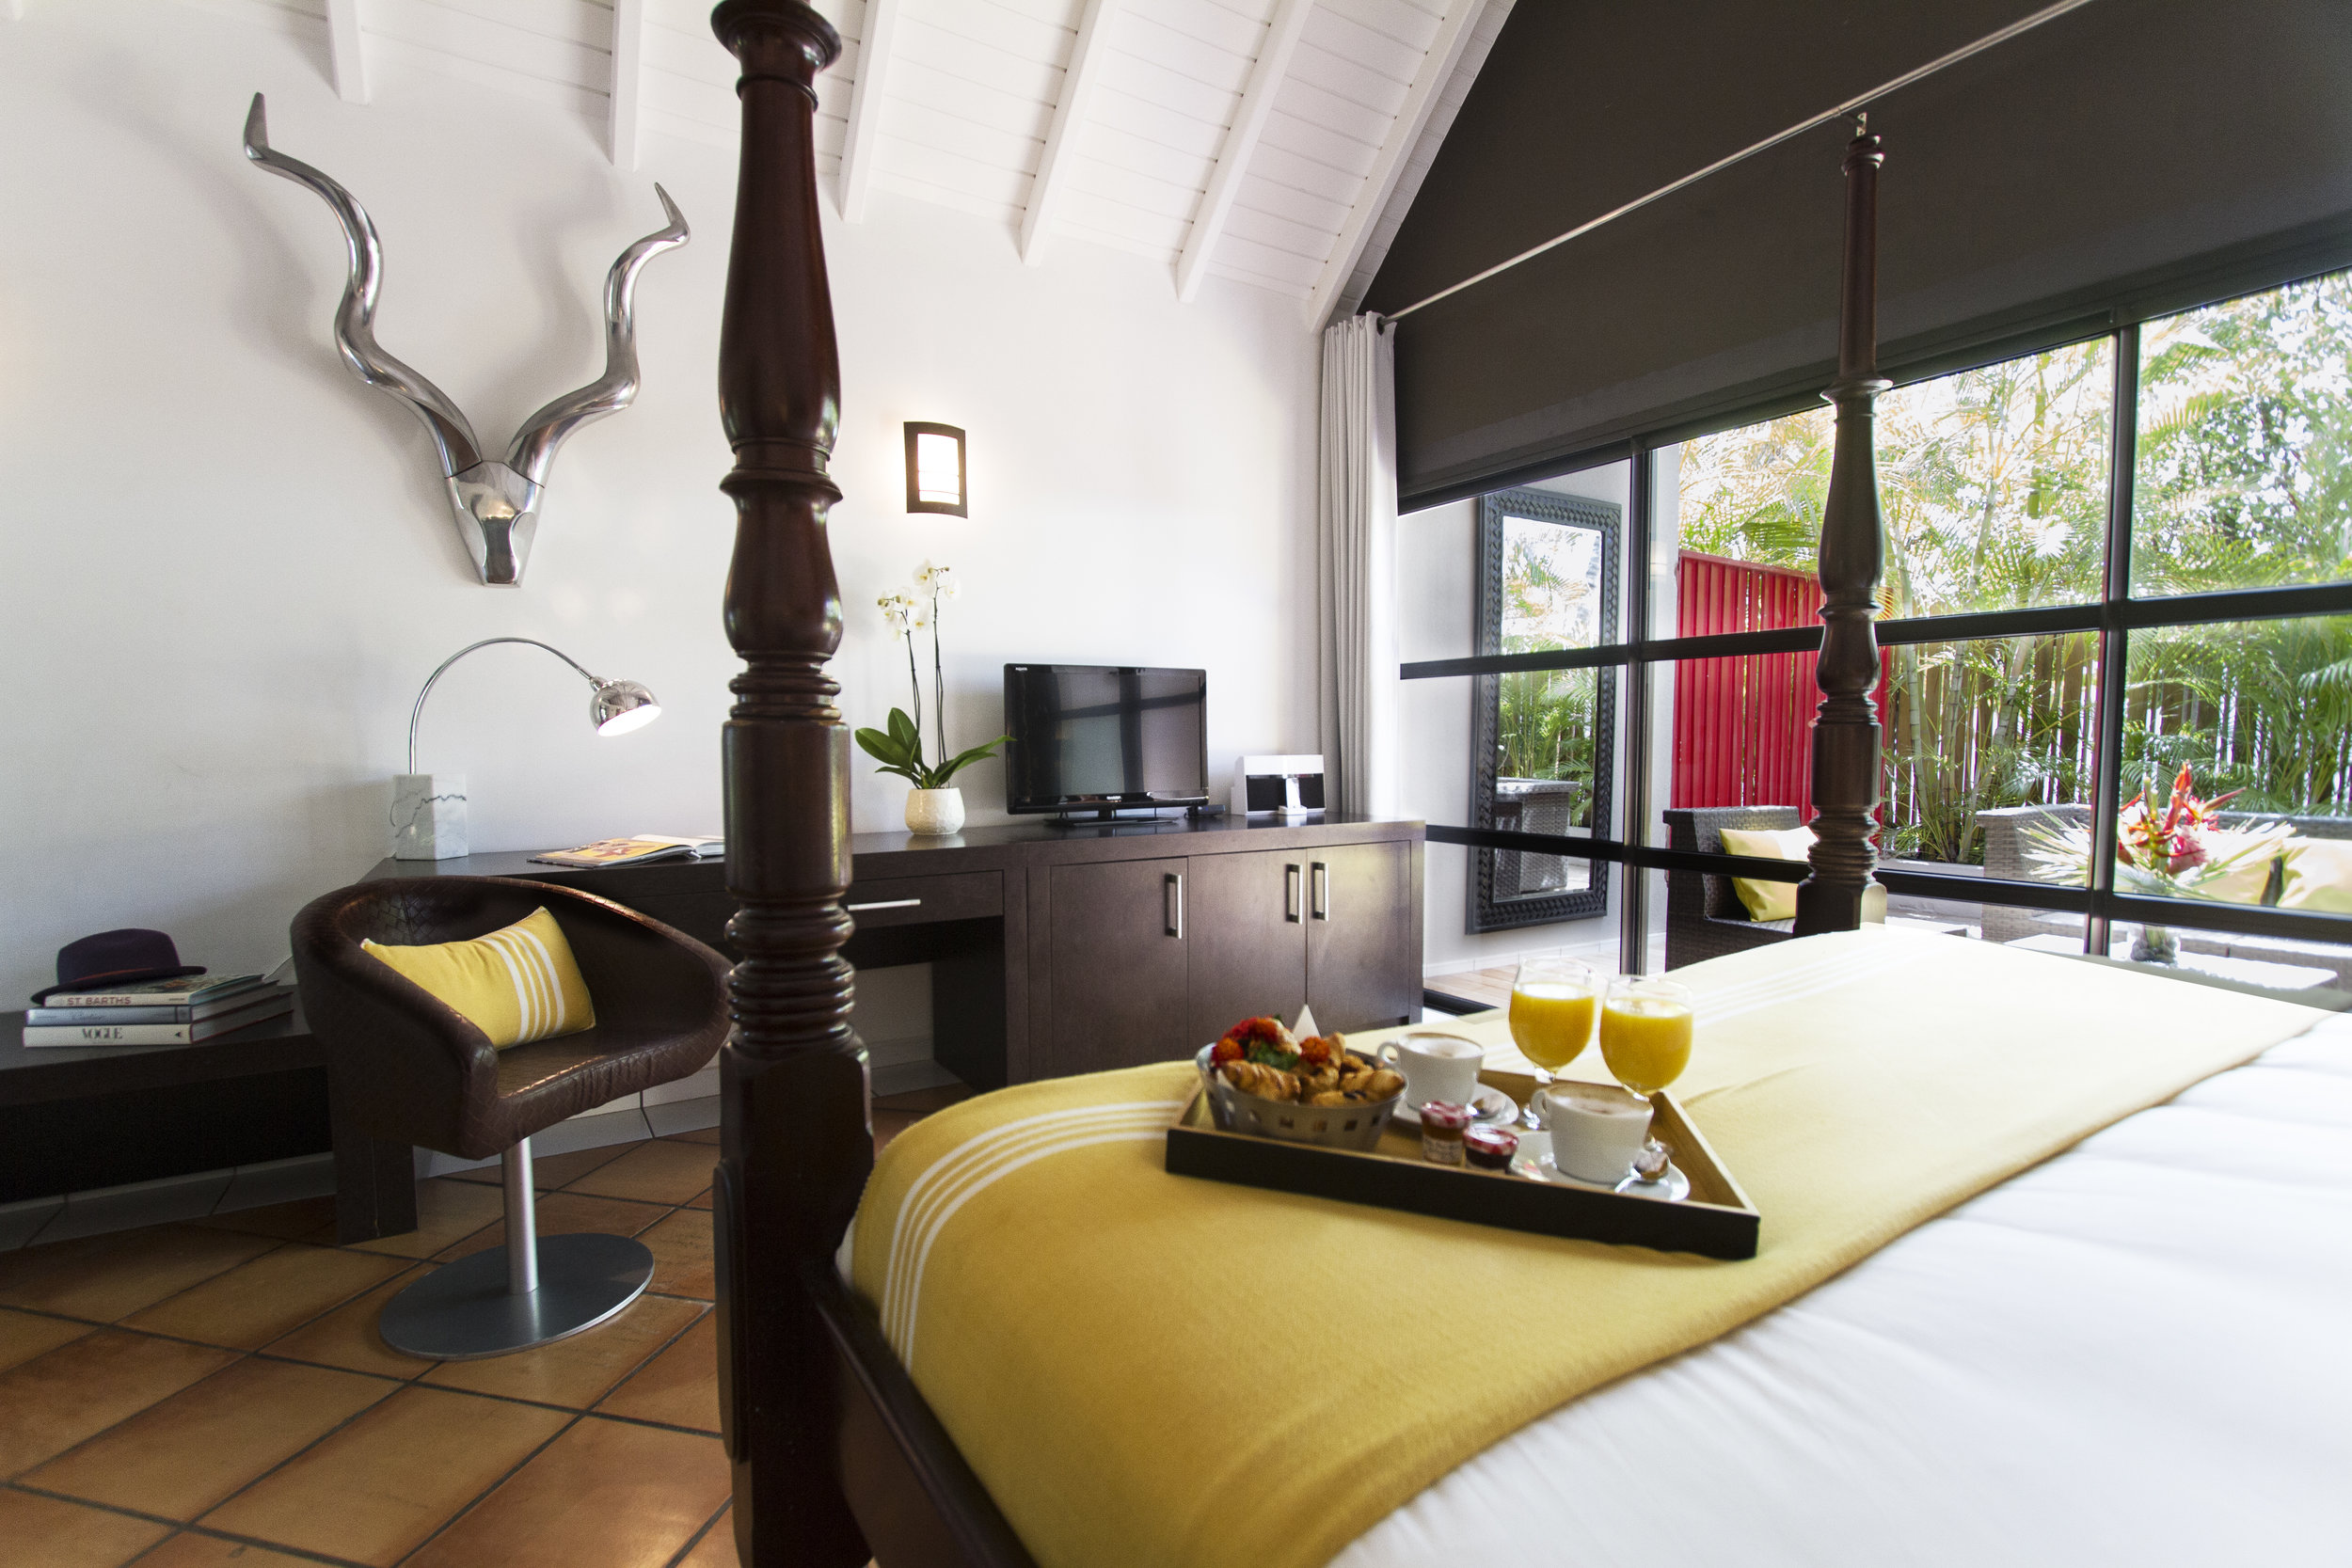 Hotel rooms - Superior Tropical garden view room 2.jpg